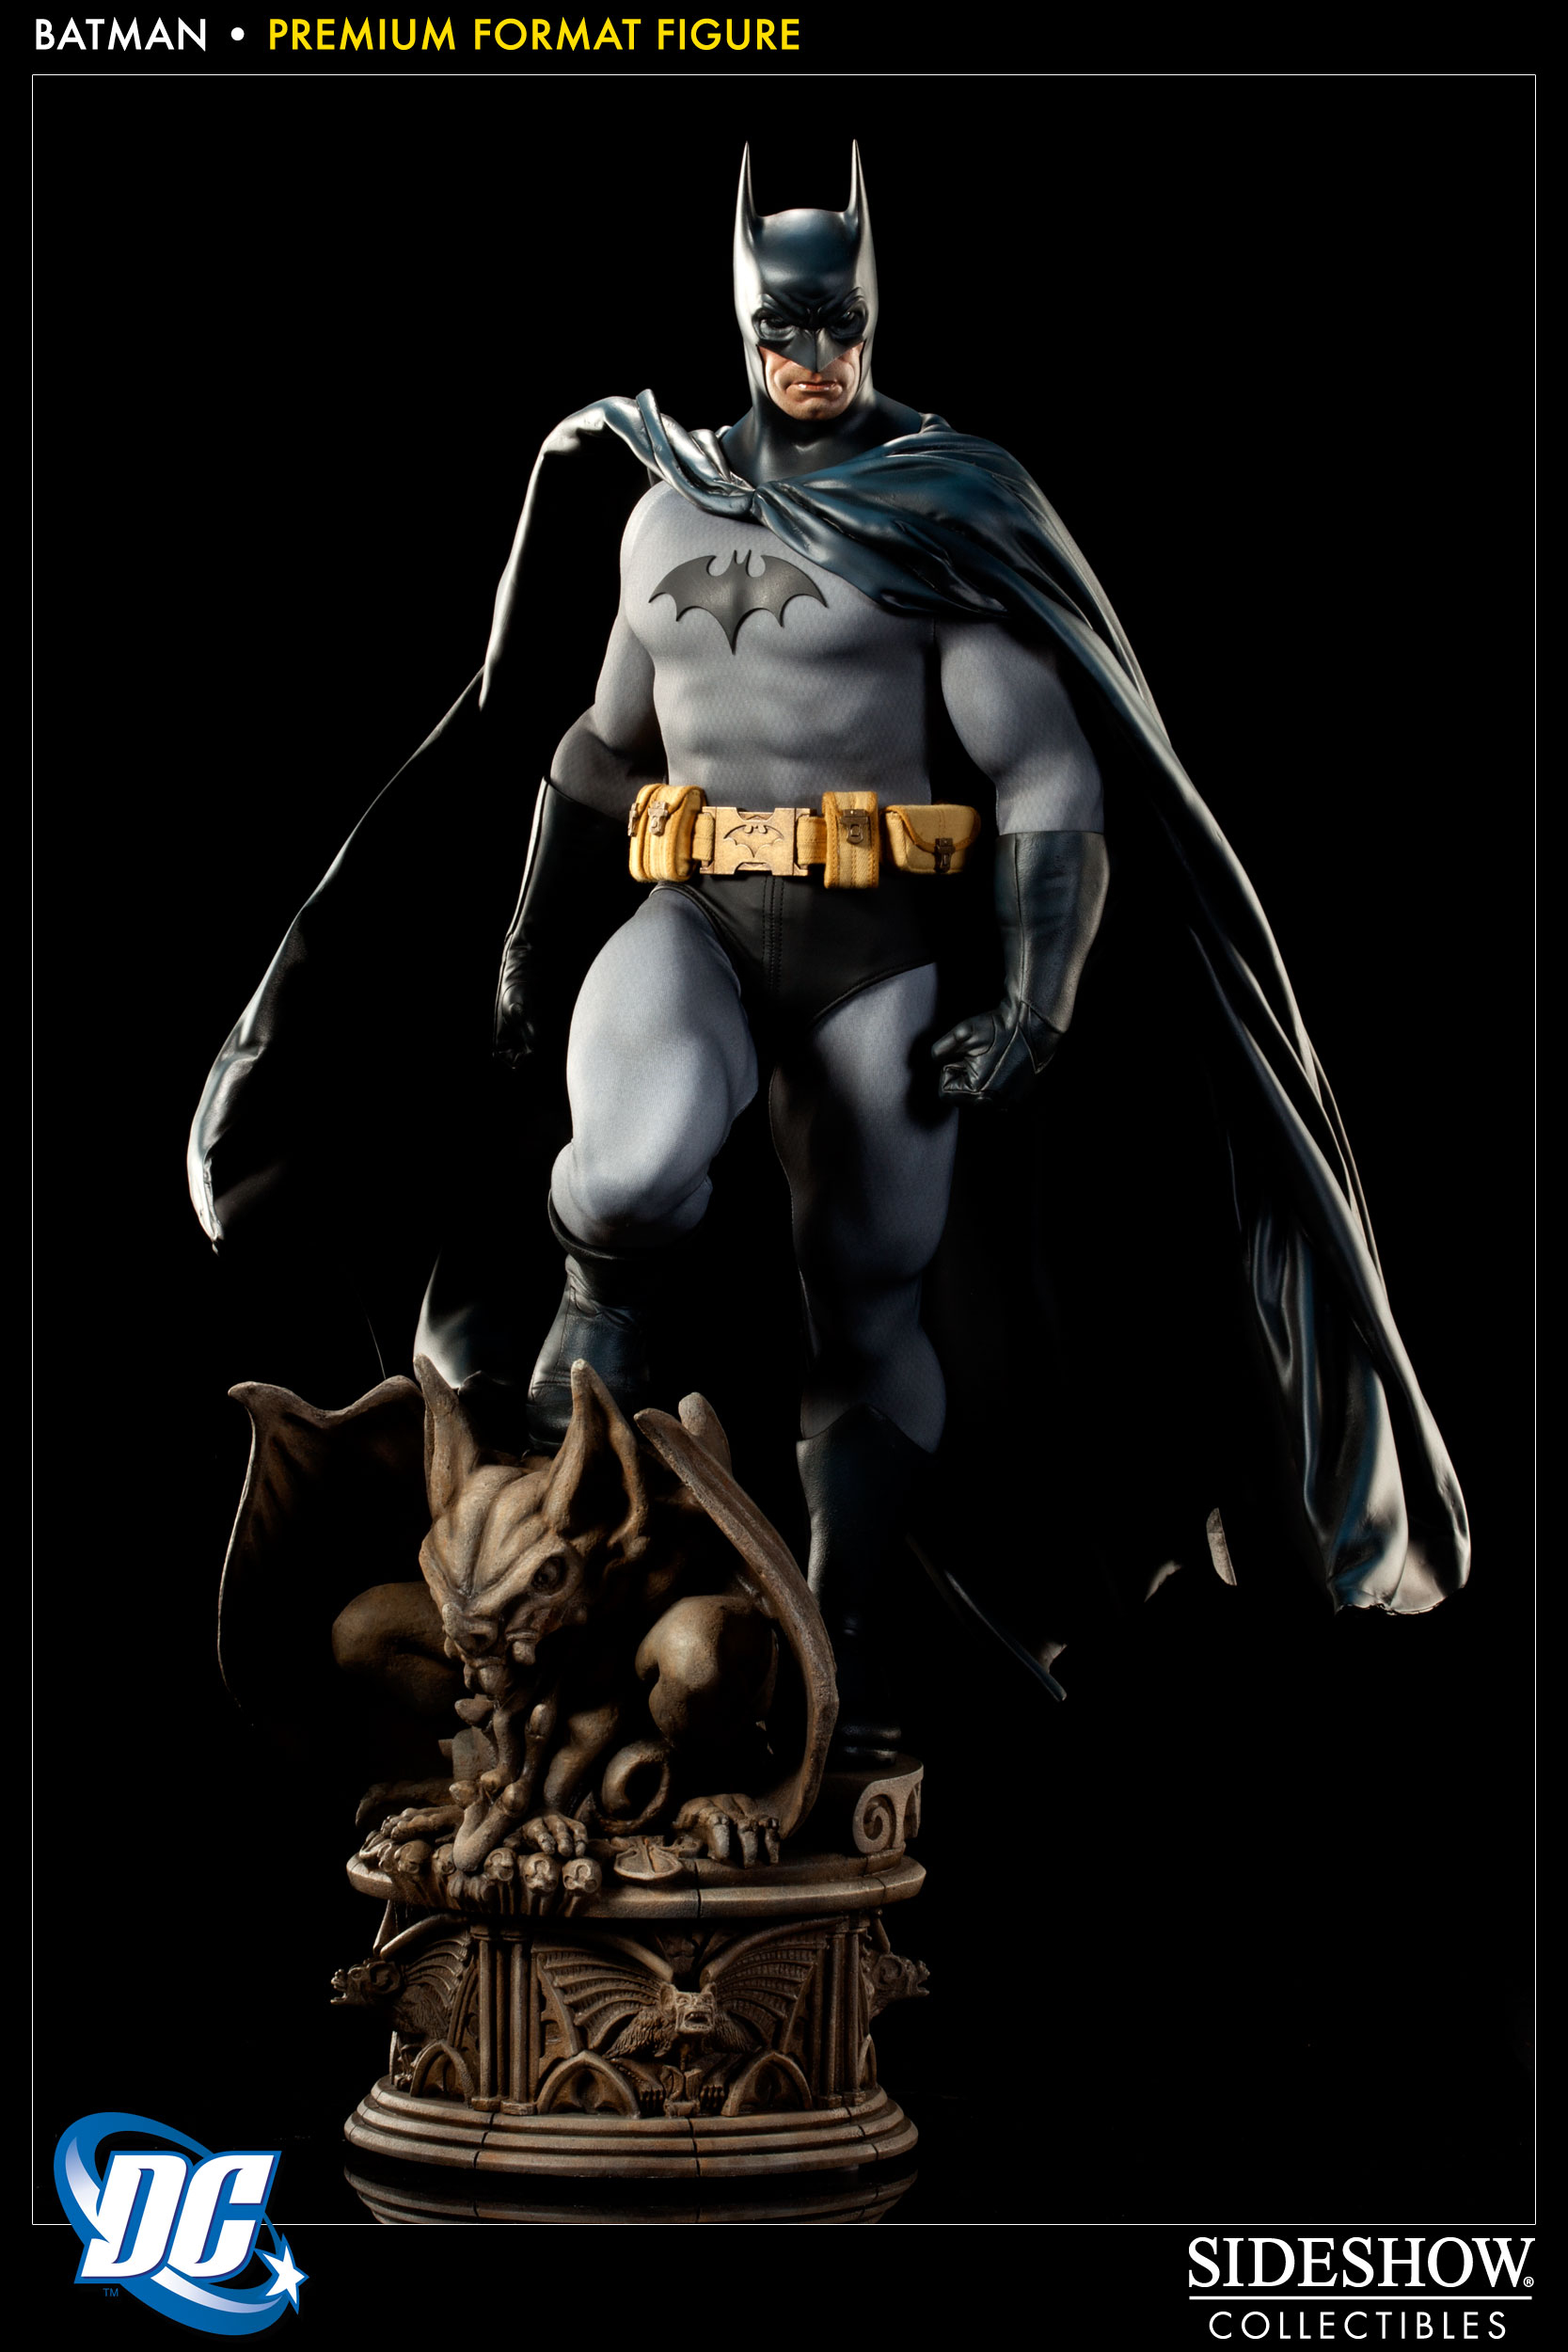 [Action Figures] Todo sobre Action Figures, Hot Toys, Sideshows Batman-premium-format-figure-wecollectgames